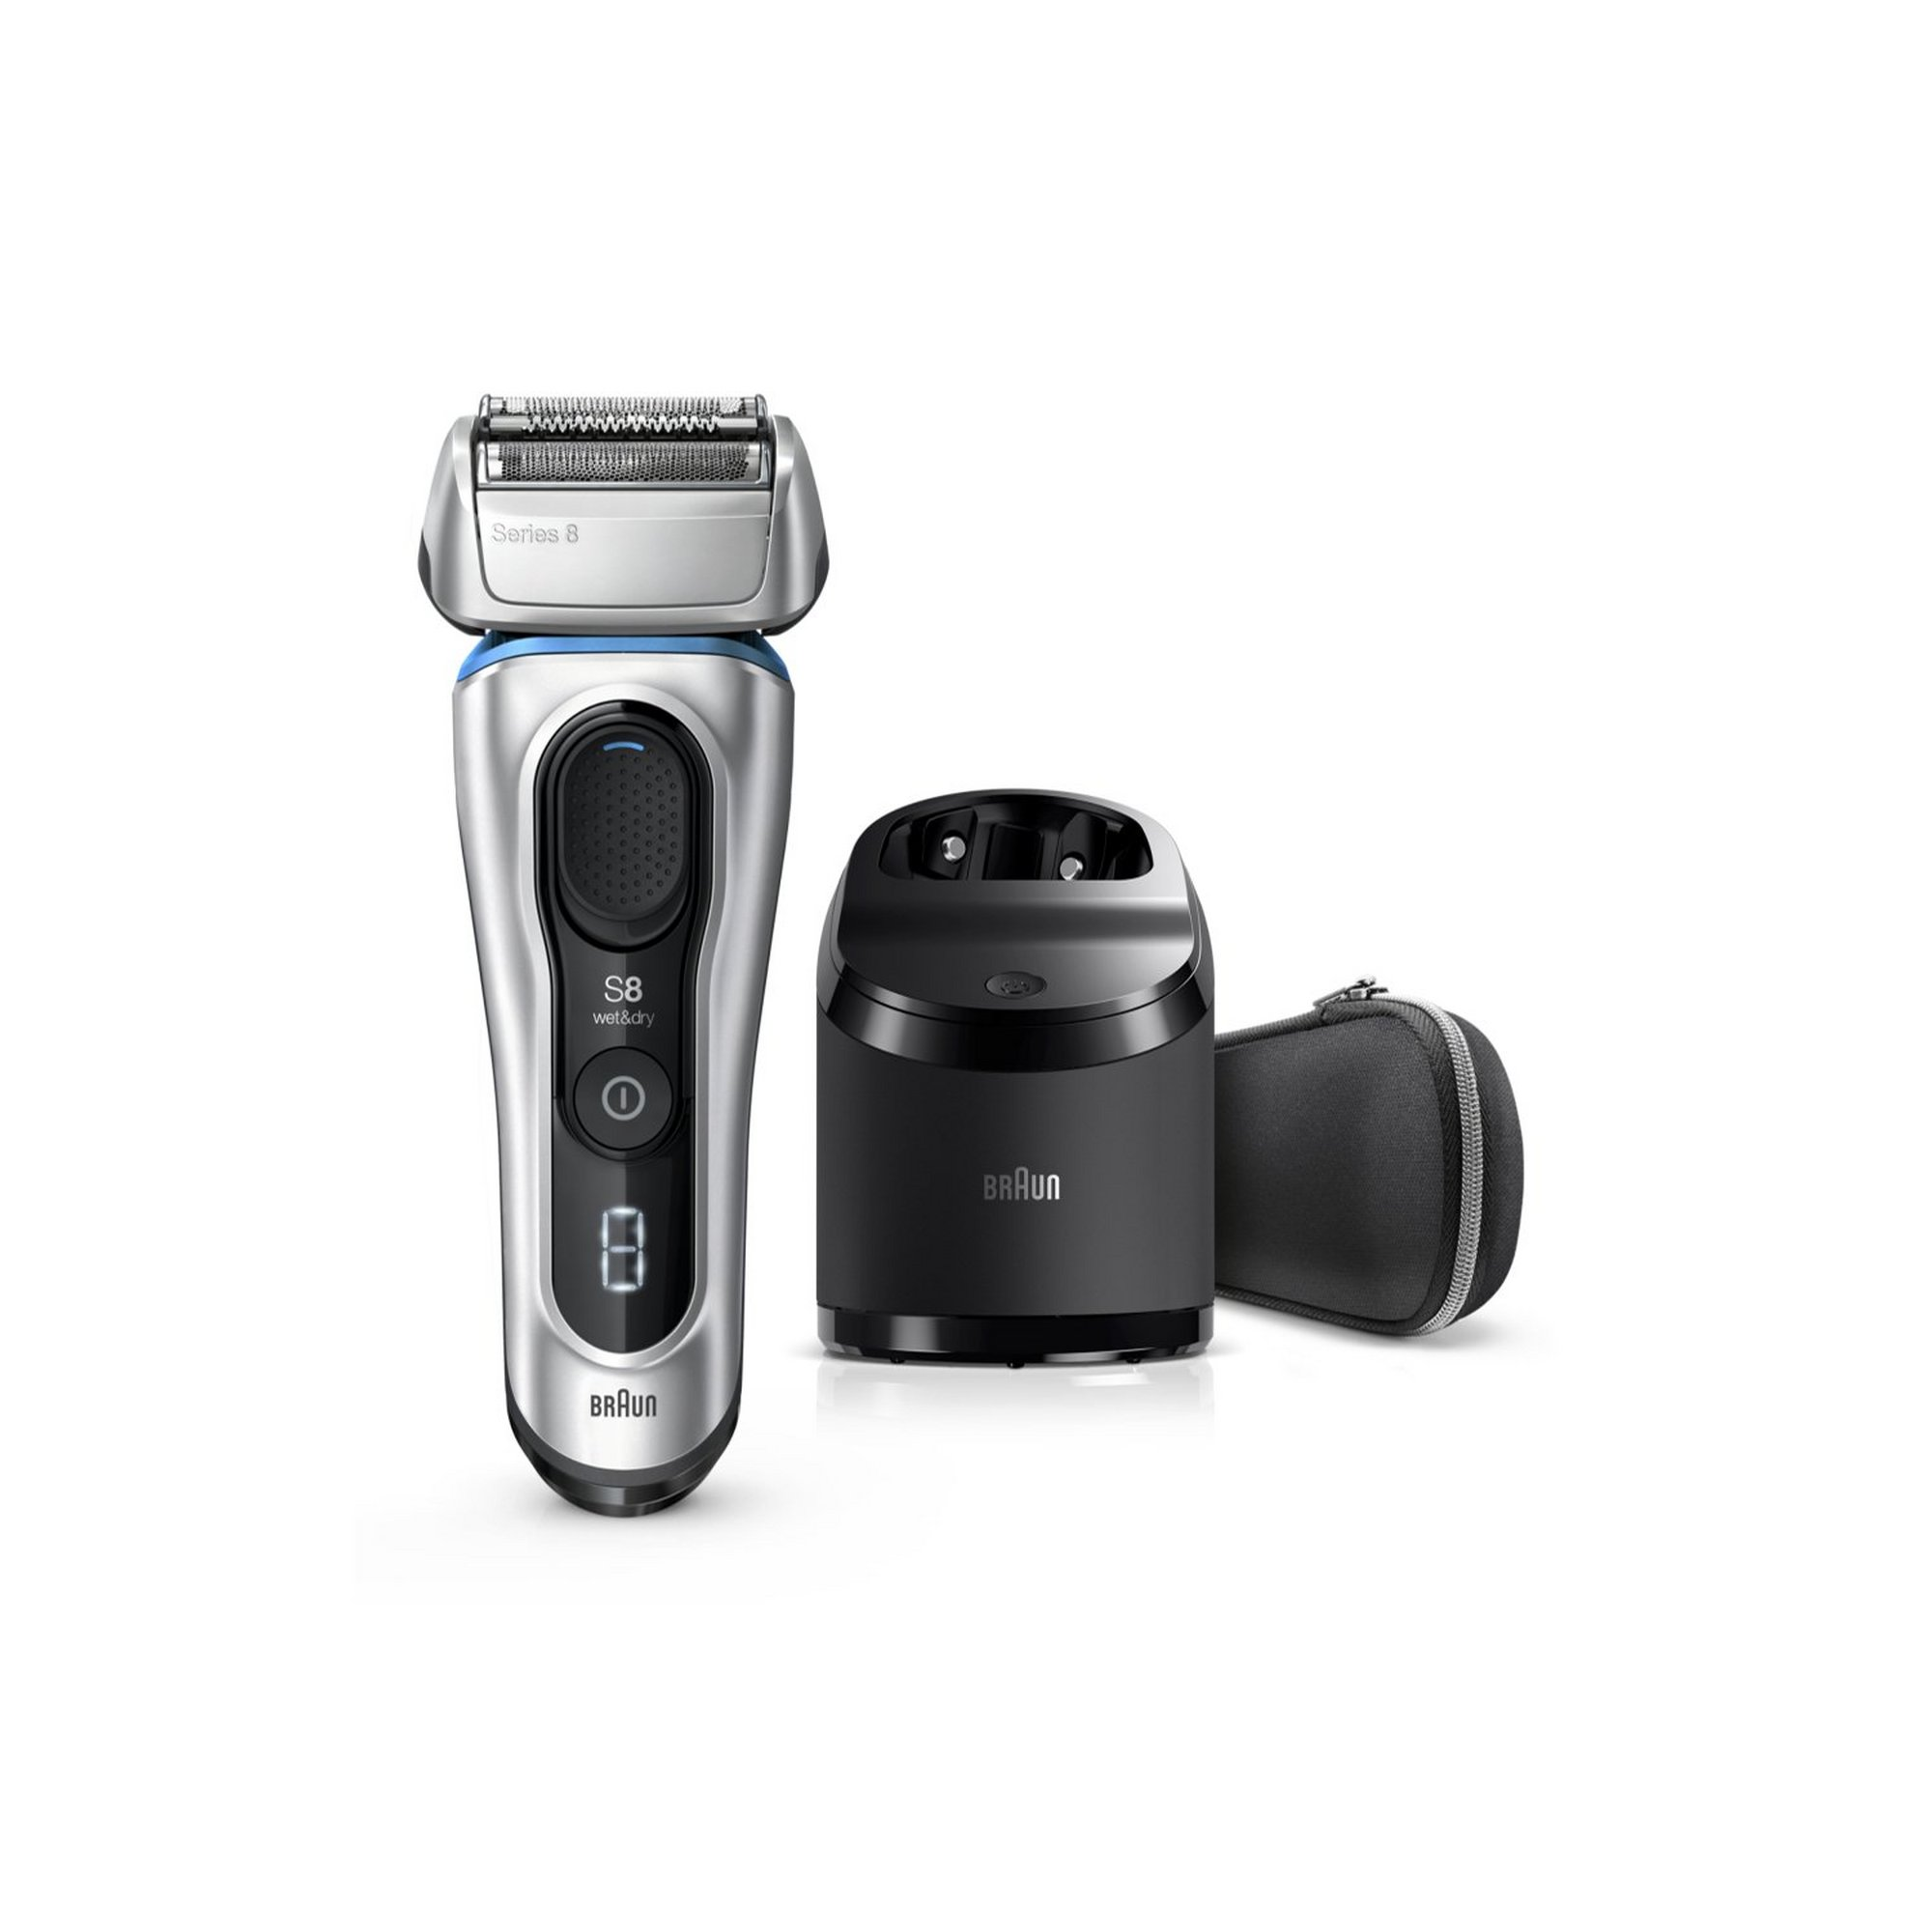 Image of Braun 8 Series Next Generation Shaver with Clean and Charge